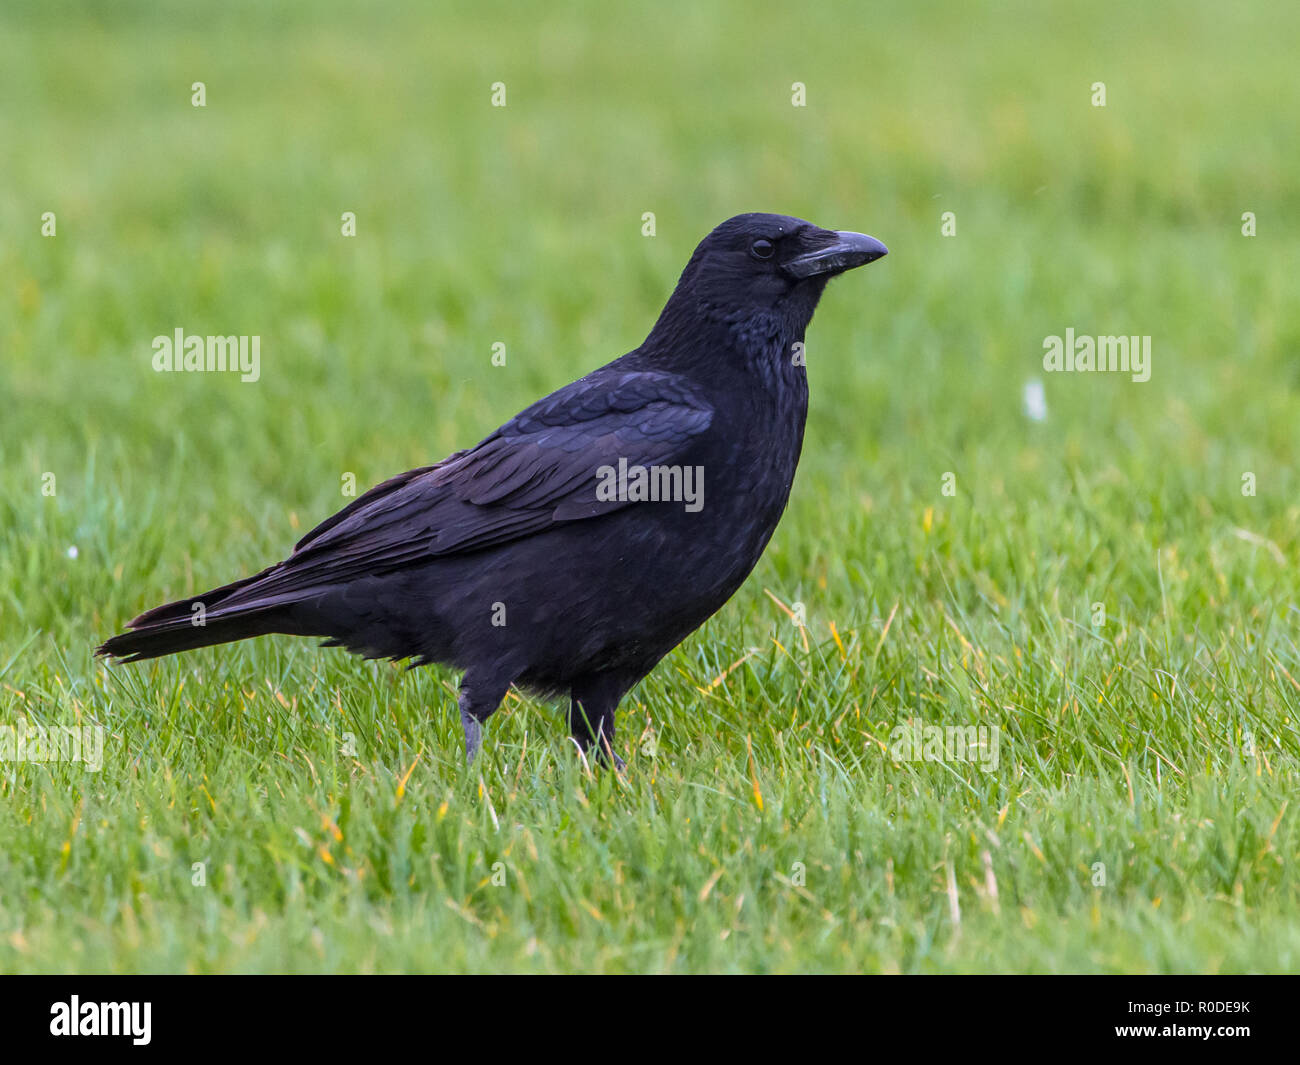 Black Crow (Corvus corone) standing on green field looking in camera - Stock Image